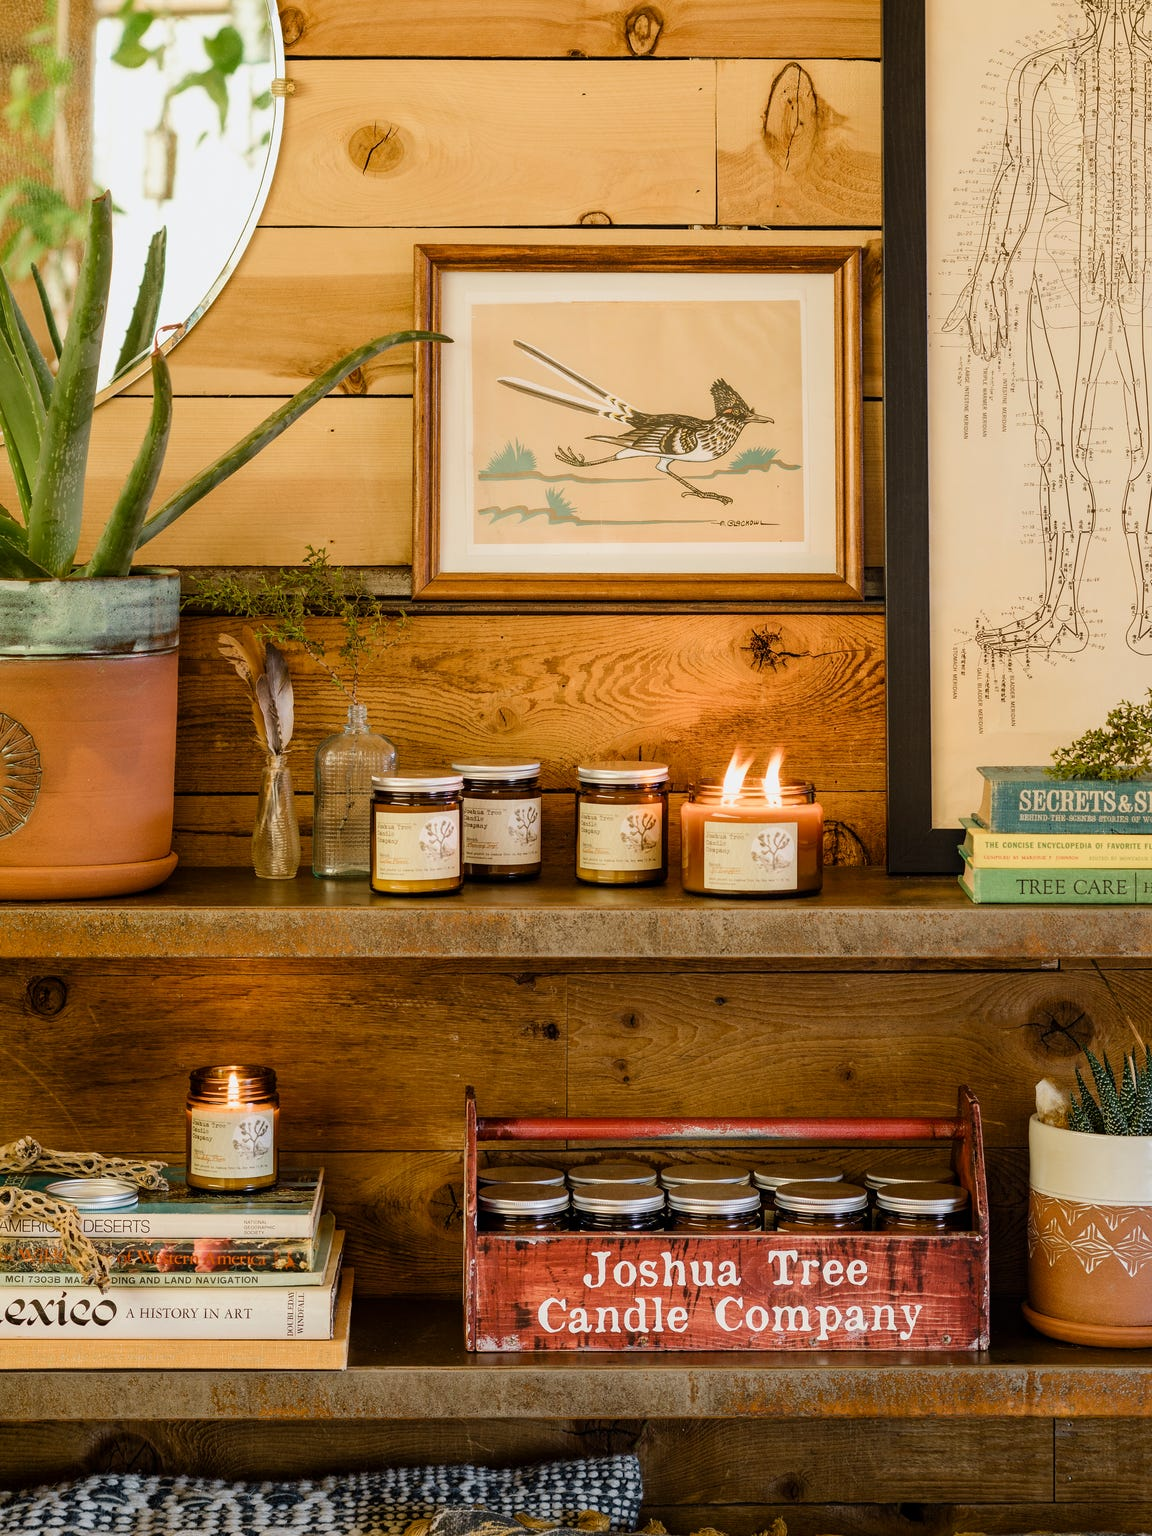 Joshua Tree Candle Co. at popular Airbnb Casa de Agave